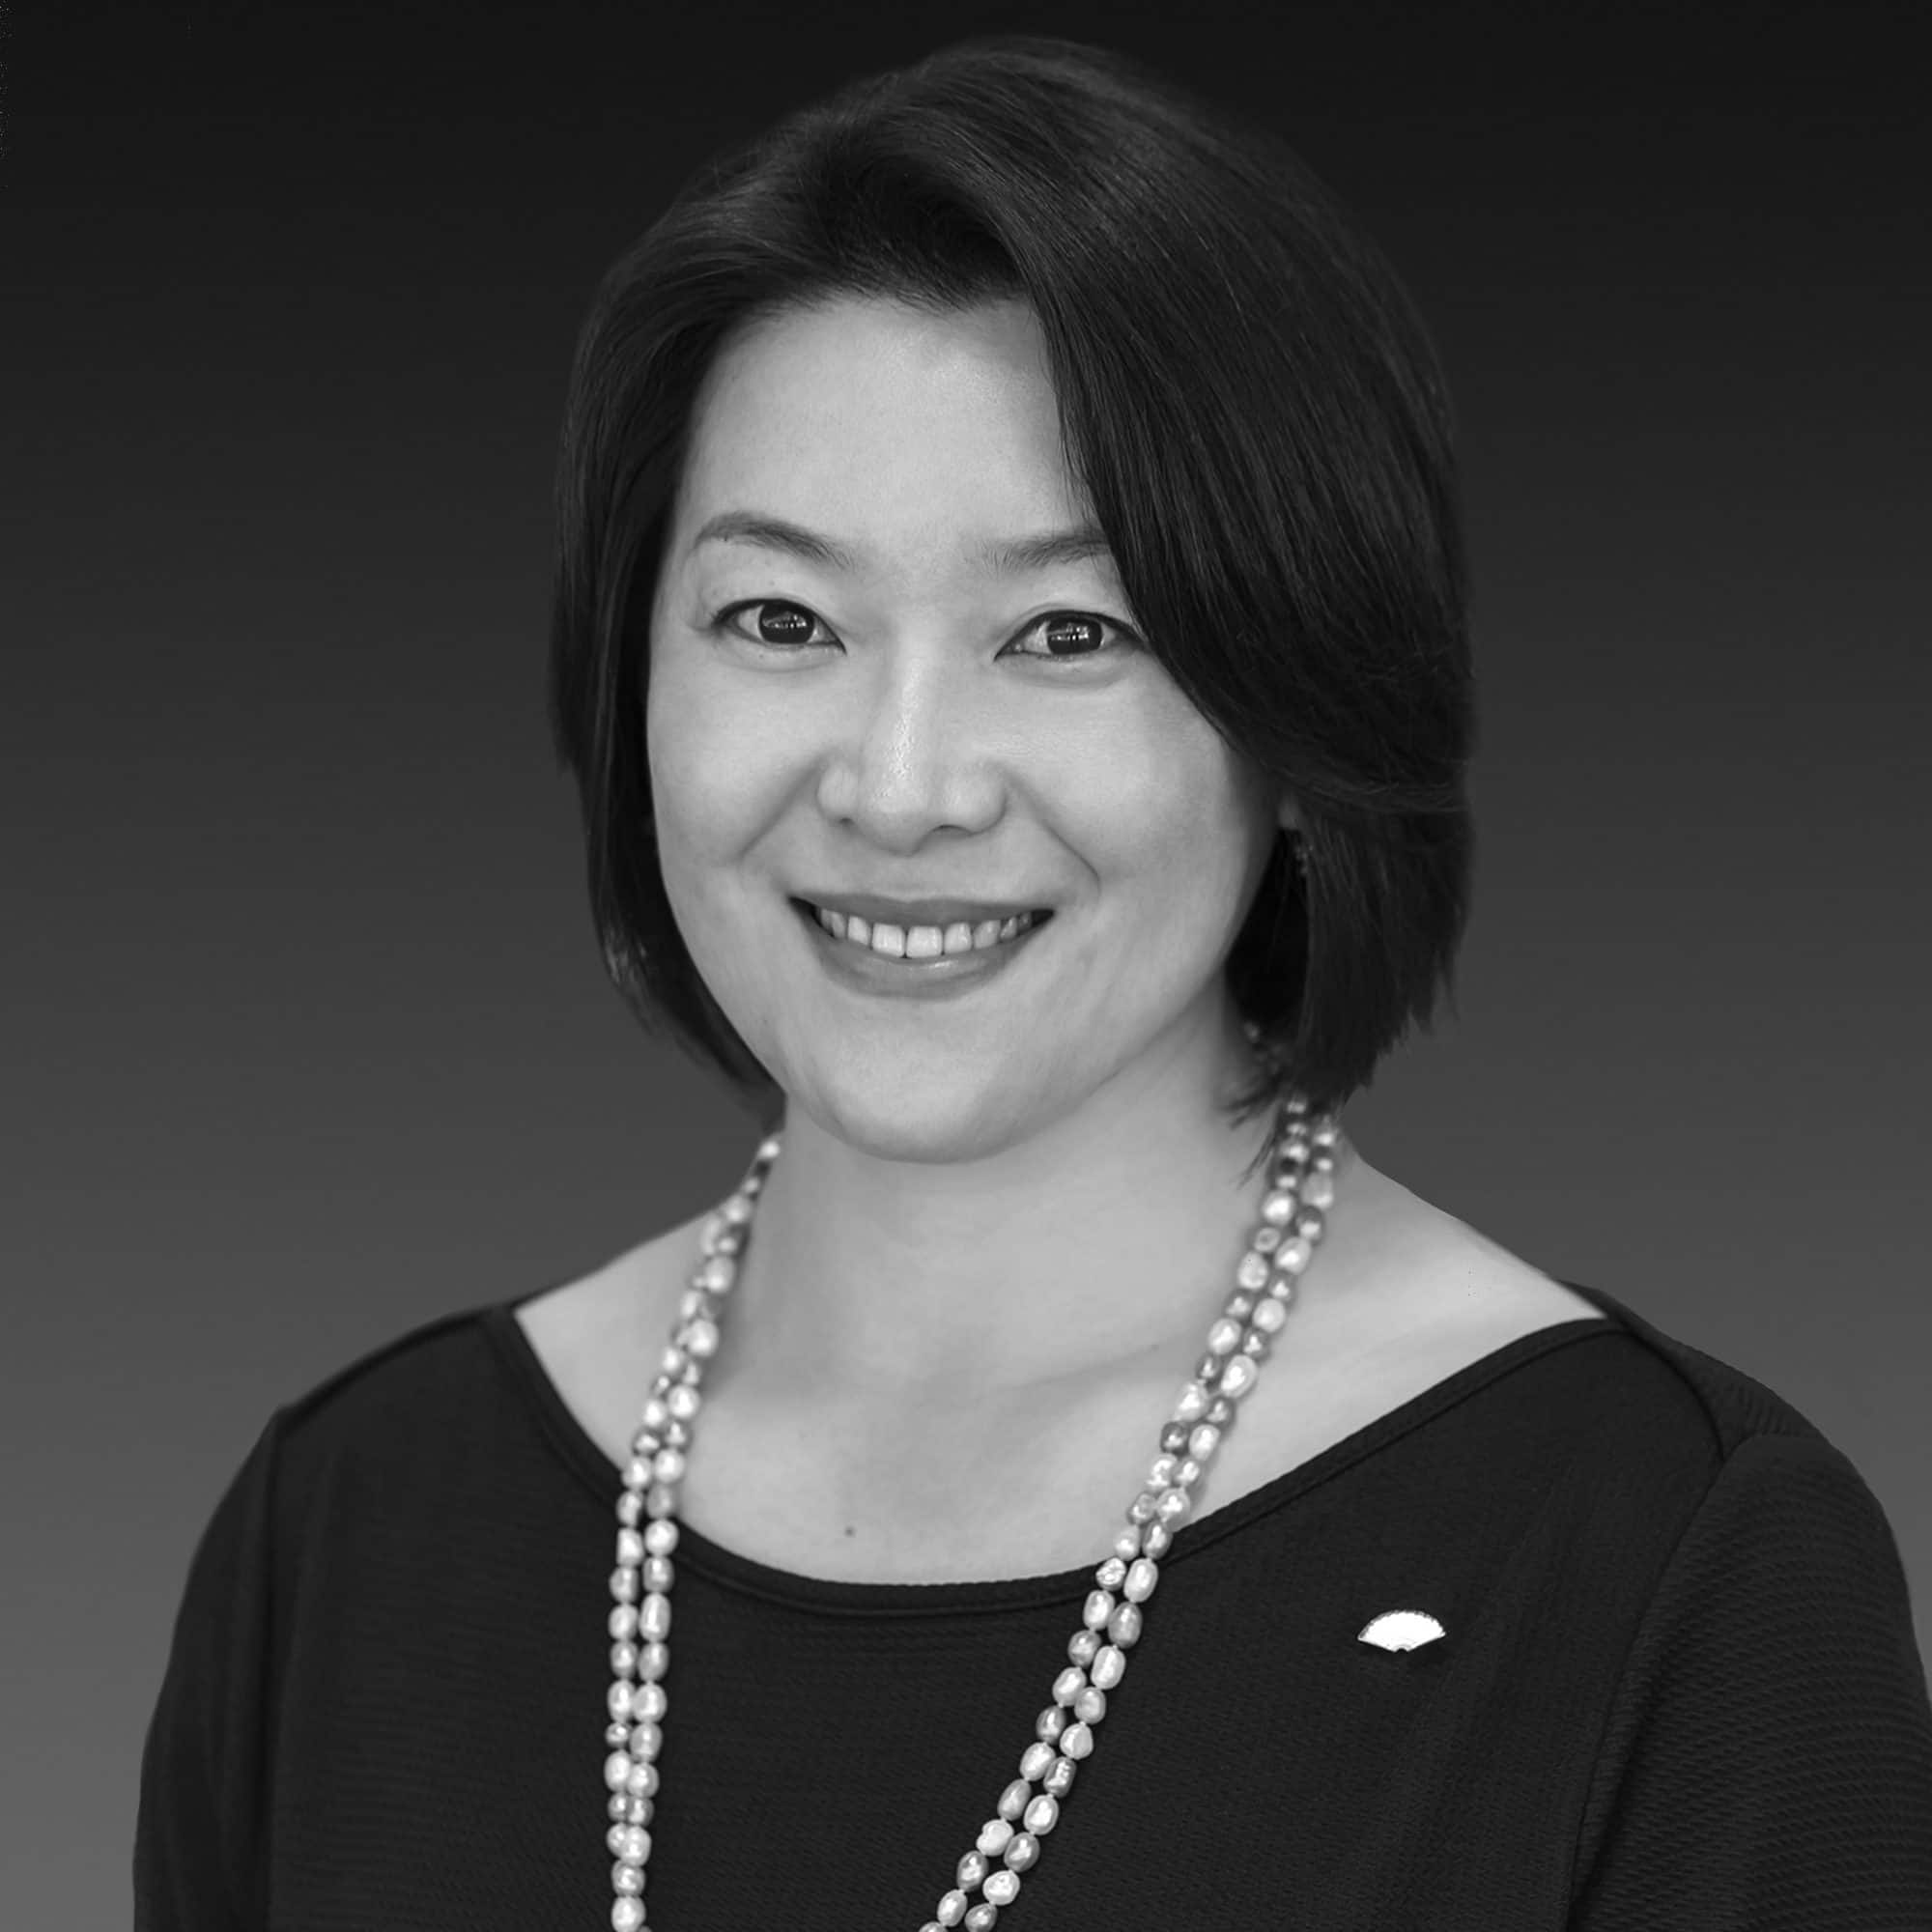 Lily Sun, Director of Marketing Communications